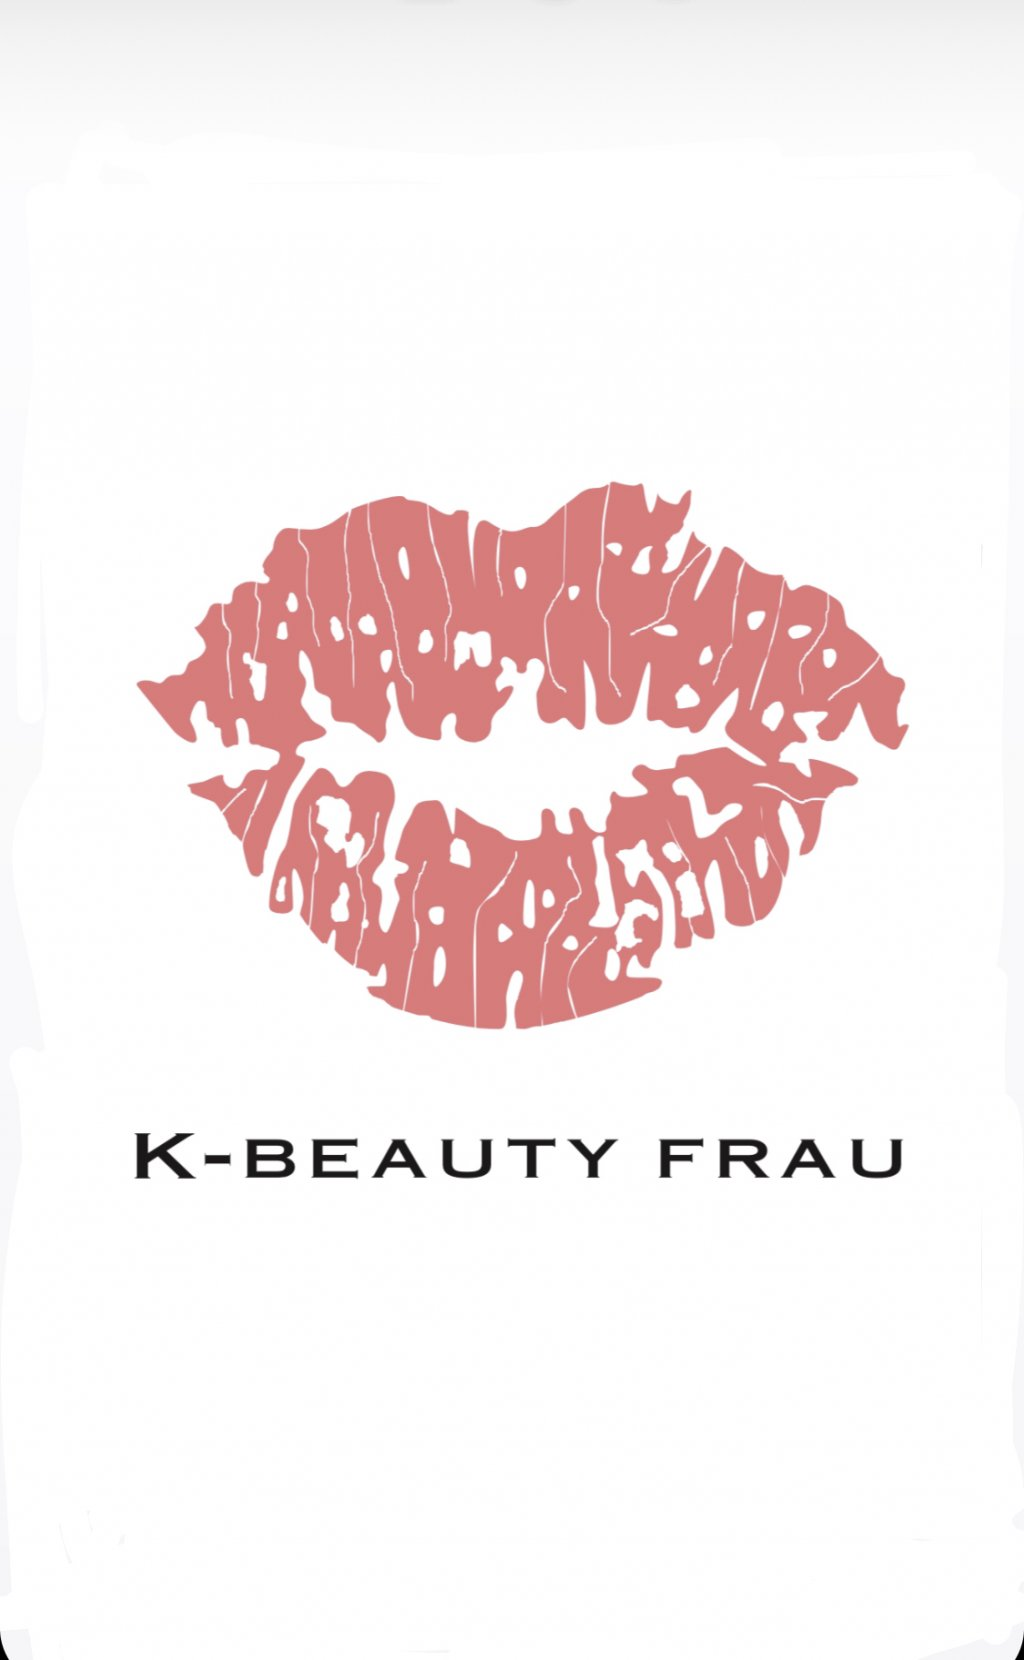 K-BEAUTY-FRAU